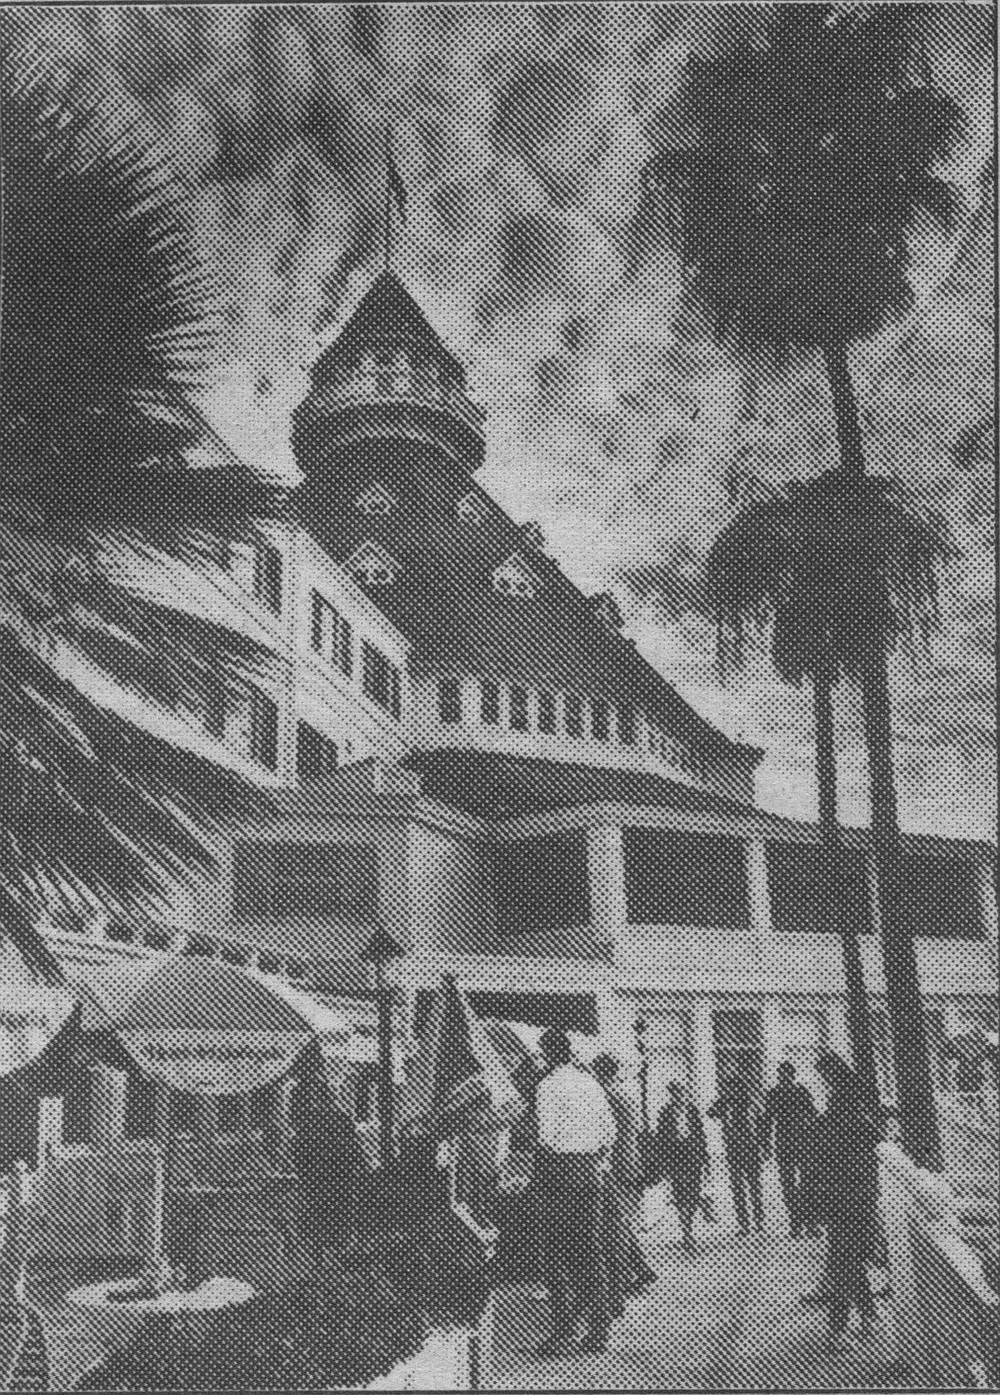 The Democratic Central Committee's annual Jefferson-Jackson dinner took place at the Hotel del Coronado; afterward, there was a second bash for Clinton, this one a $50-a-head jazz reception on the hotel's Promenade Deck.